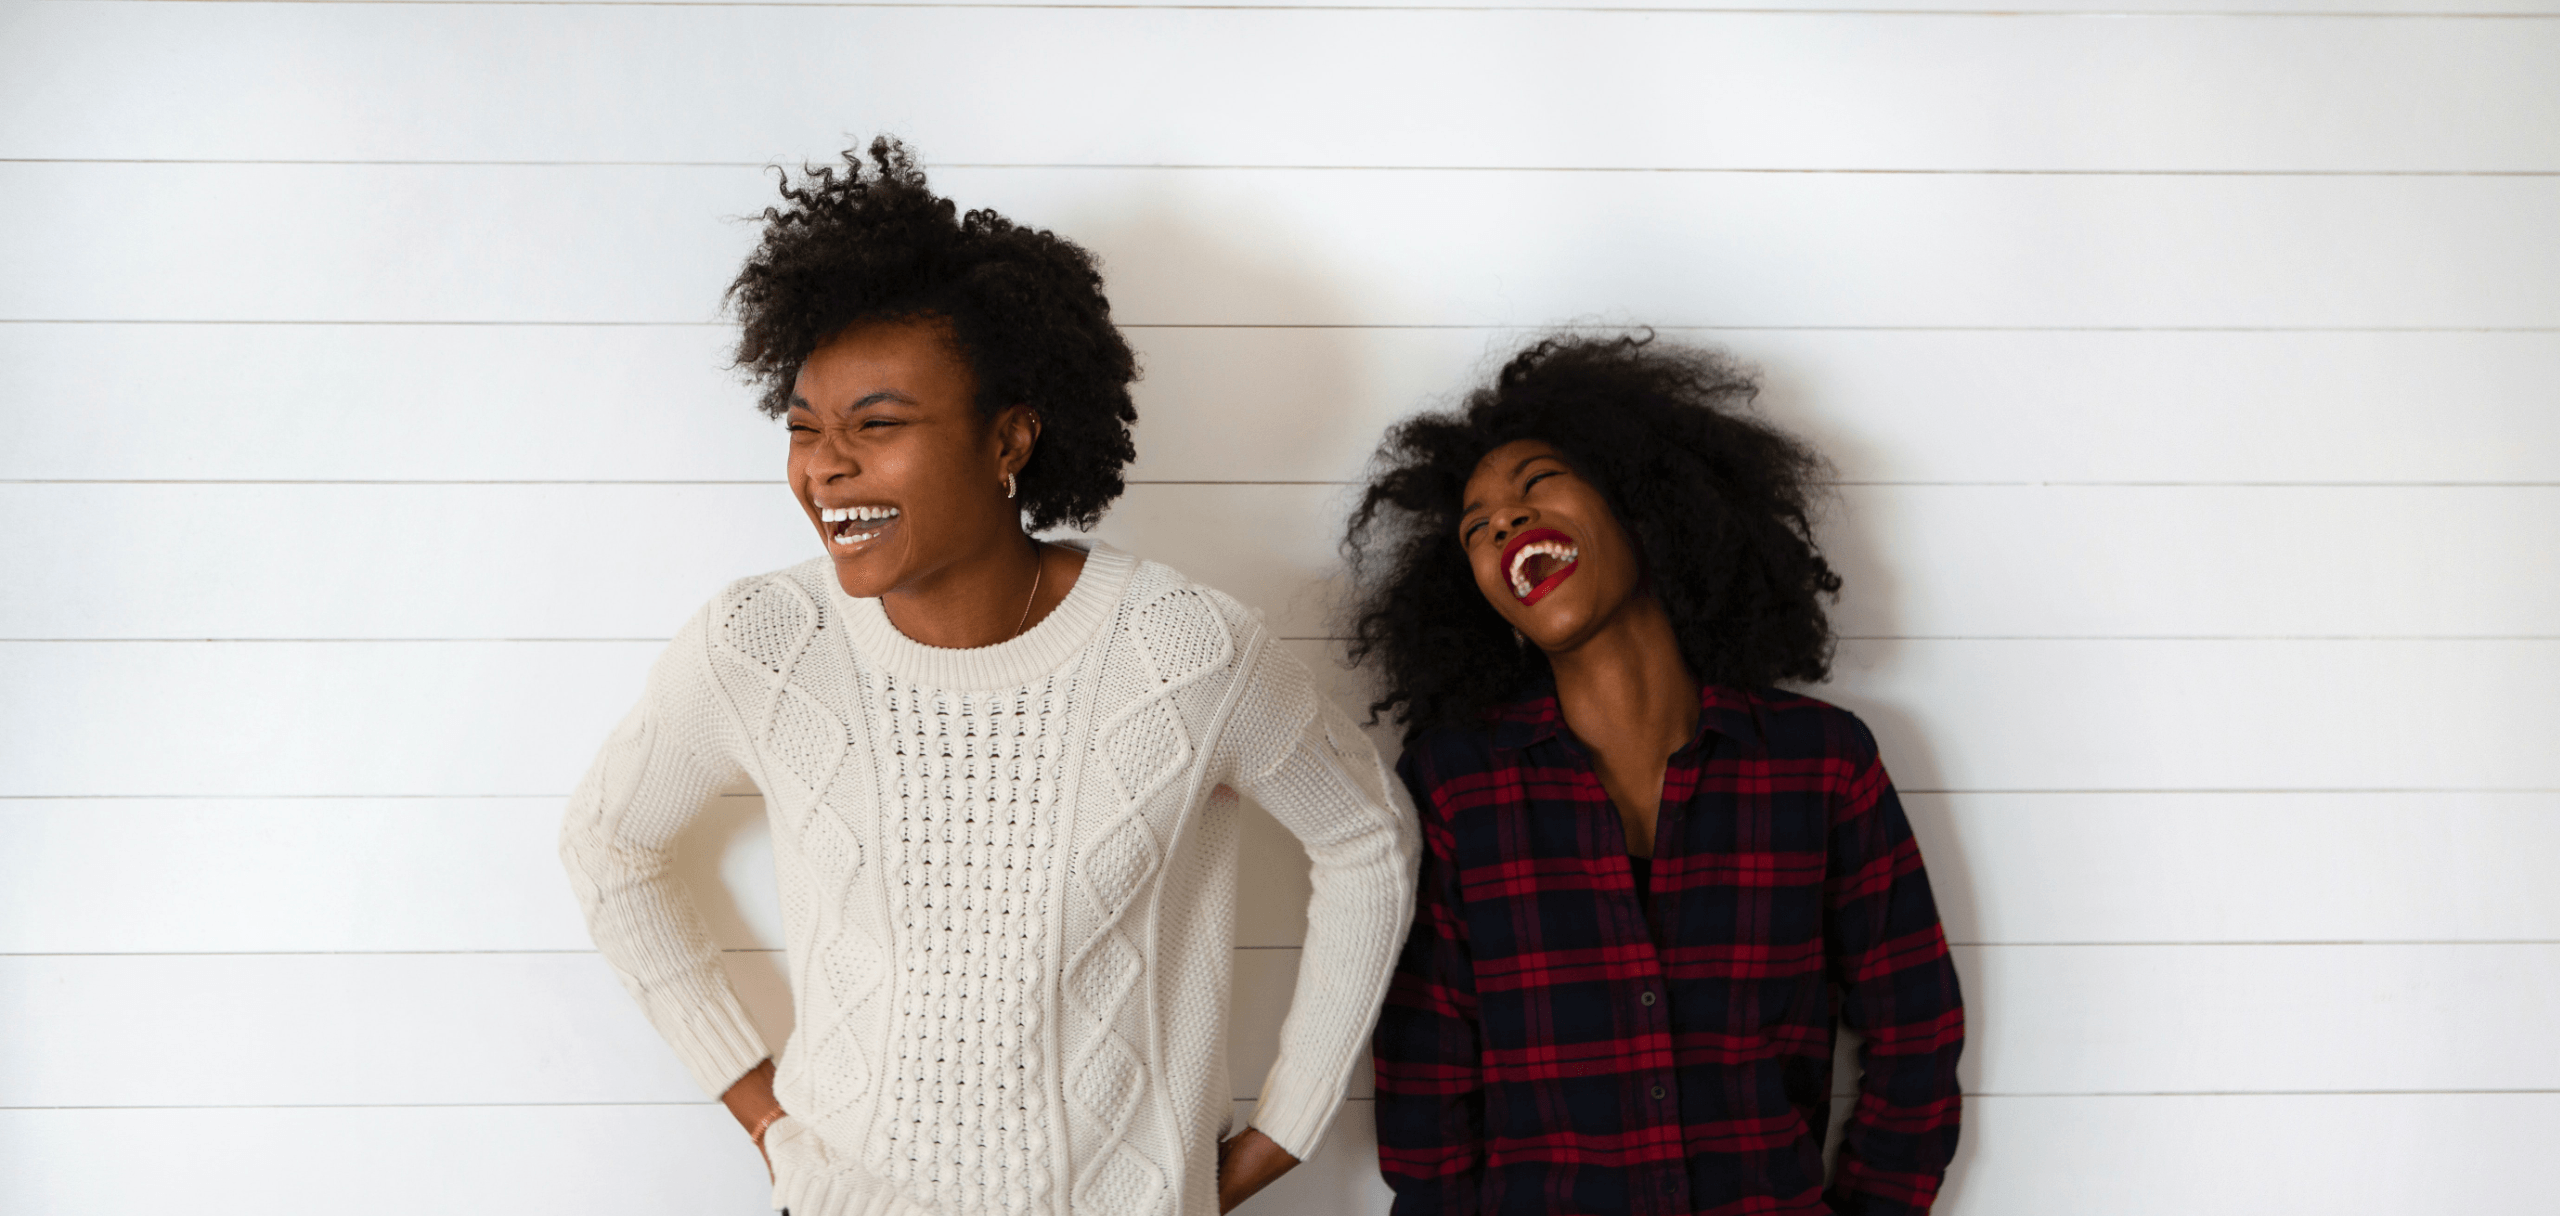 Two females laughing against a white wooden backdrop.